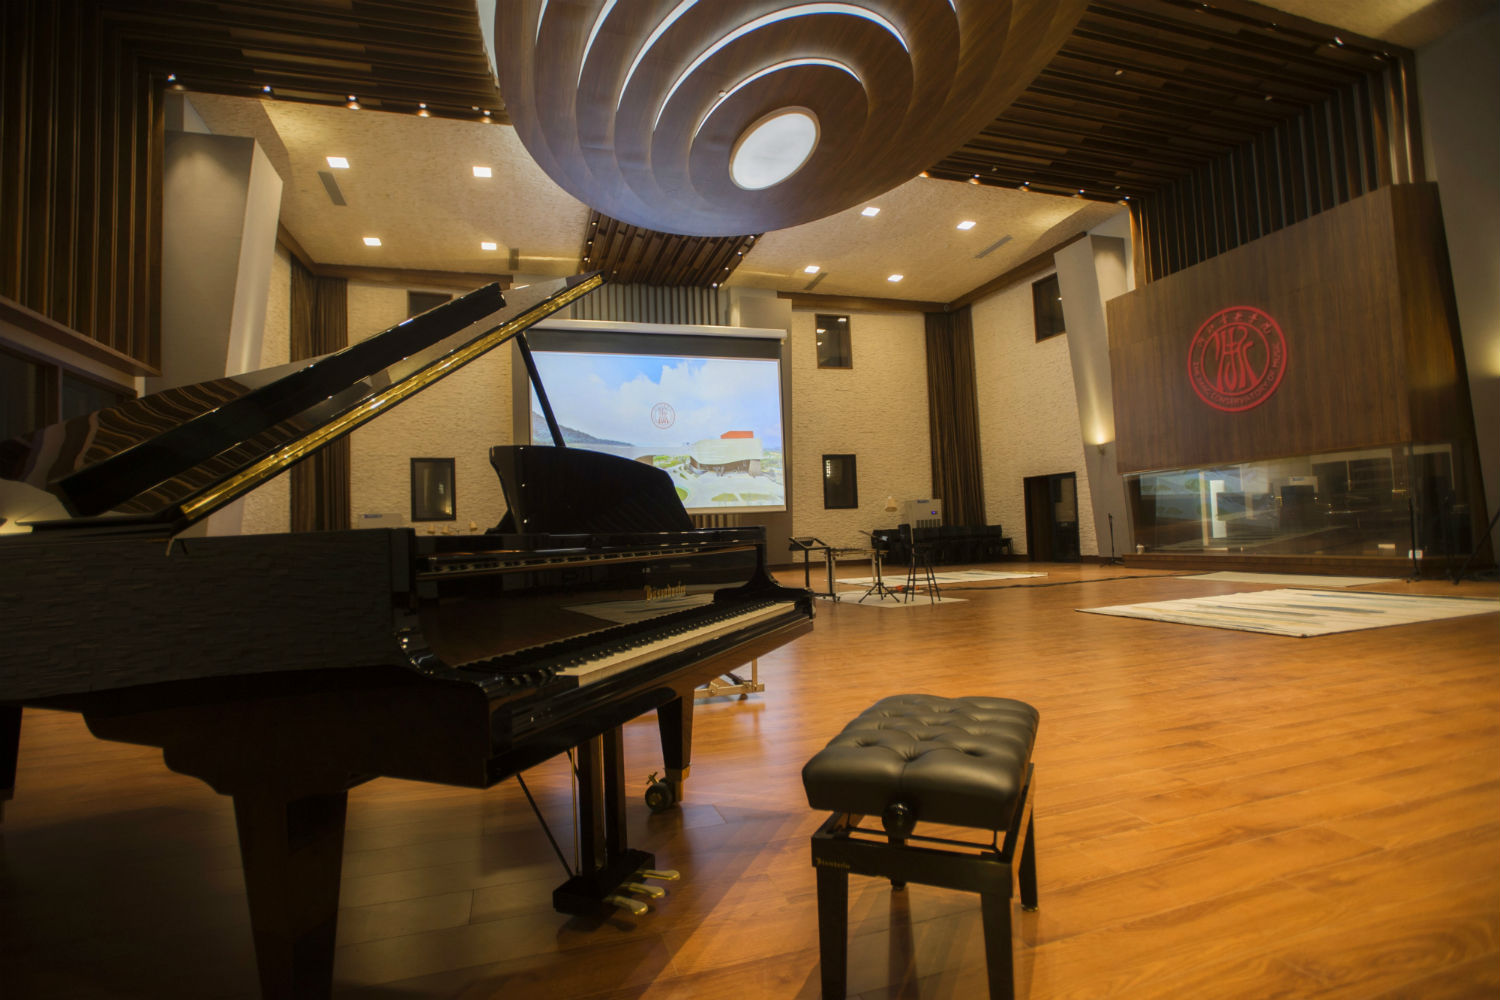 Zhejiang Conservatory of Music in Hangzhou, East China commissioned WSDG to create an important addition to this extraordinary institution, a 21st Century Music Production & Education Complex. Live Room Piano View.